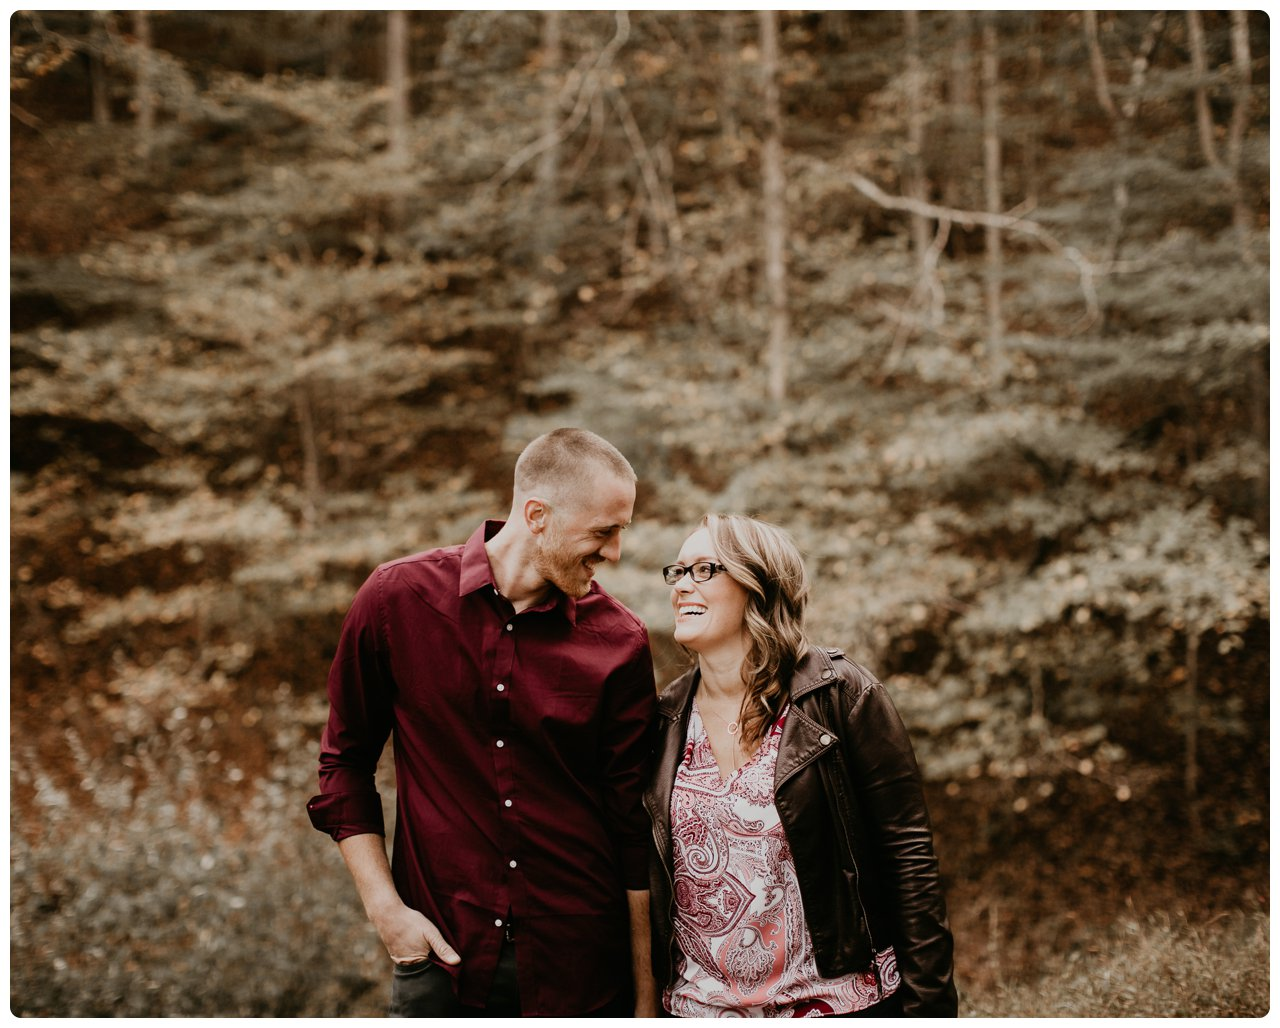 Engagement-Roanoke-Virginia-Pat-Cori-Photography-005.jpg